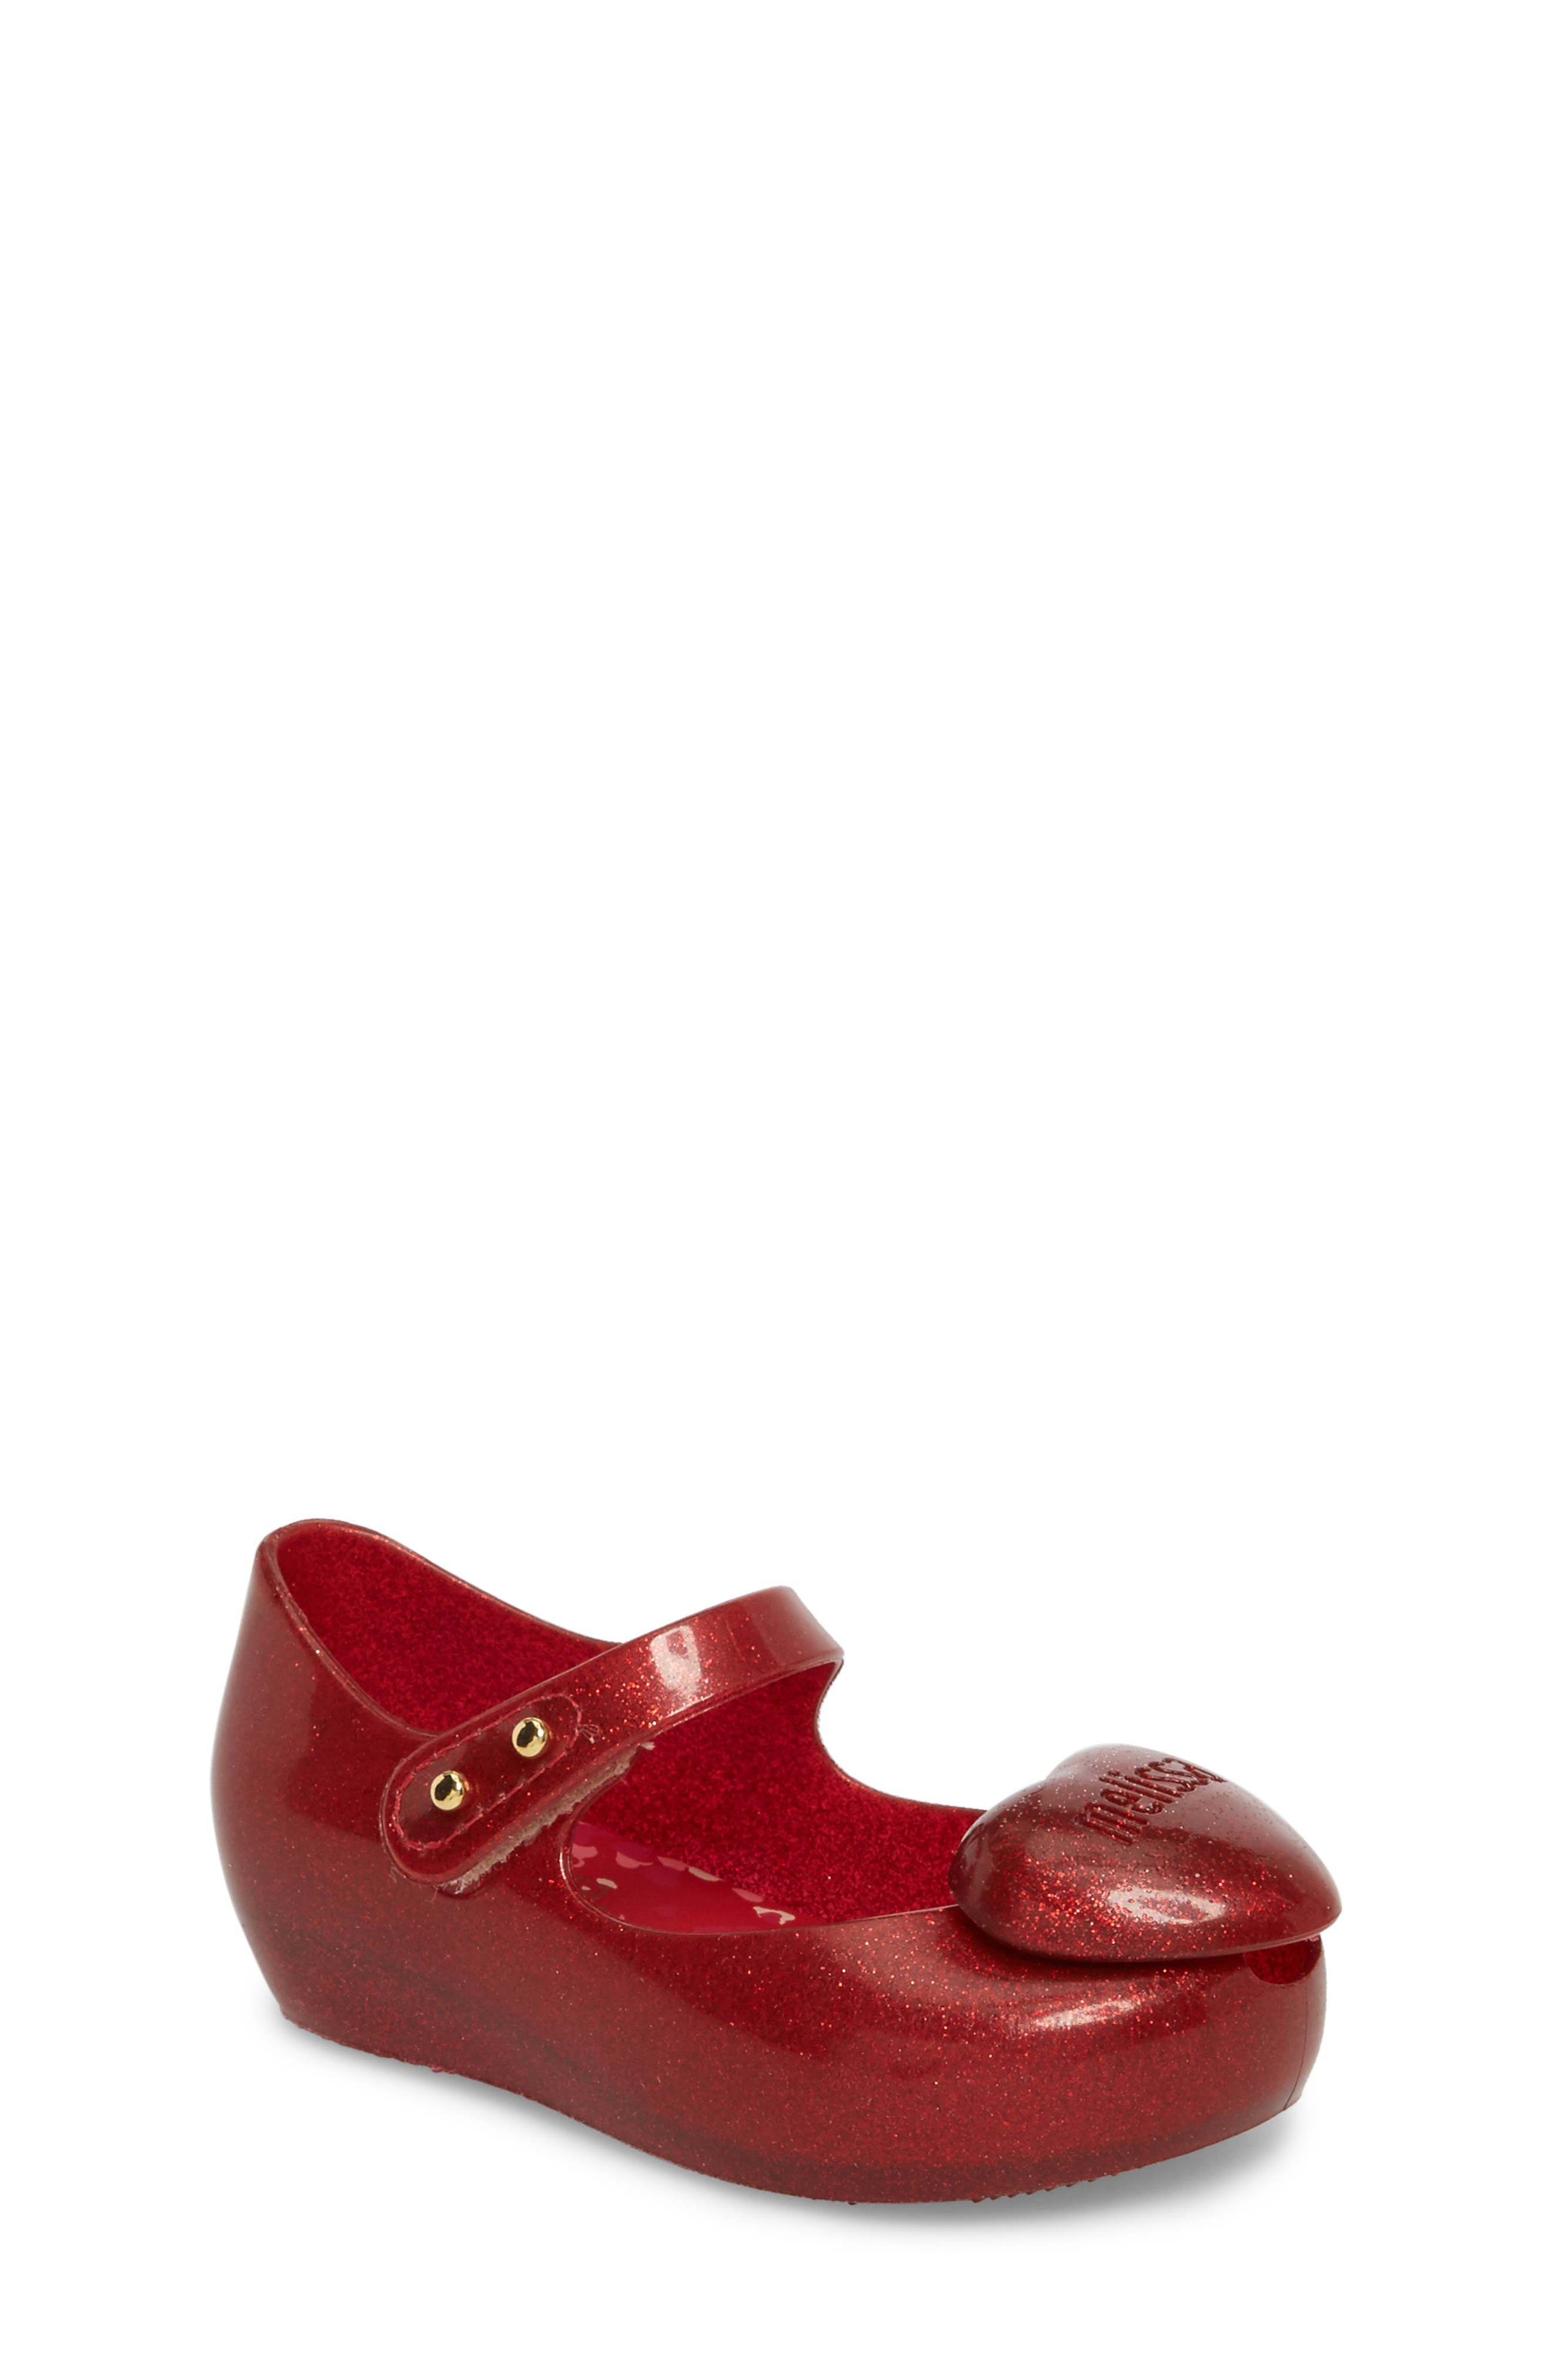 Ultragirl Heart Mary Jane Flat,                         Main,                         color, Red Sparkle